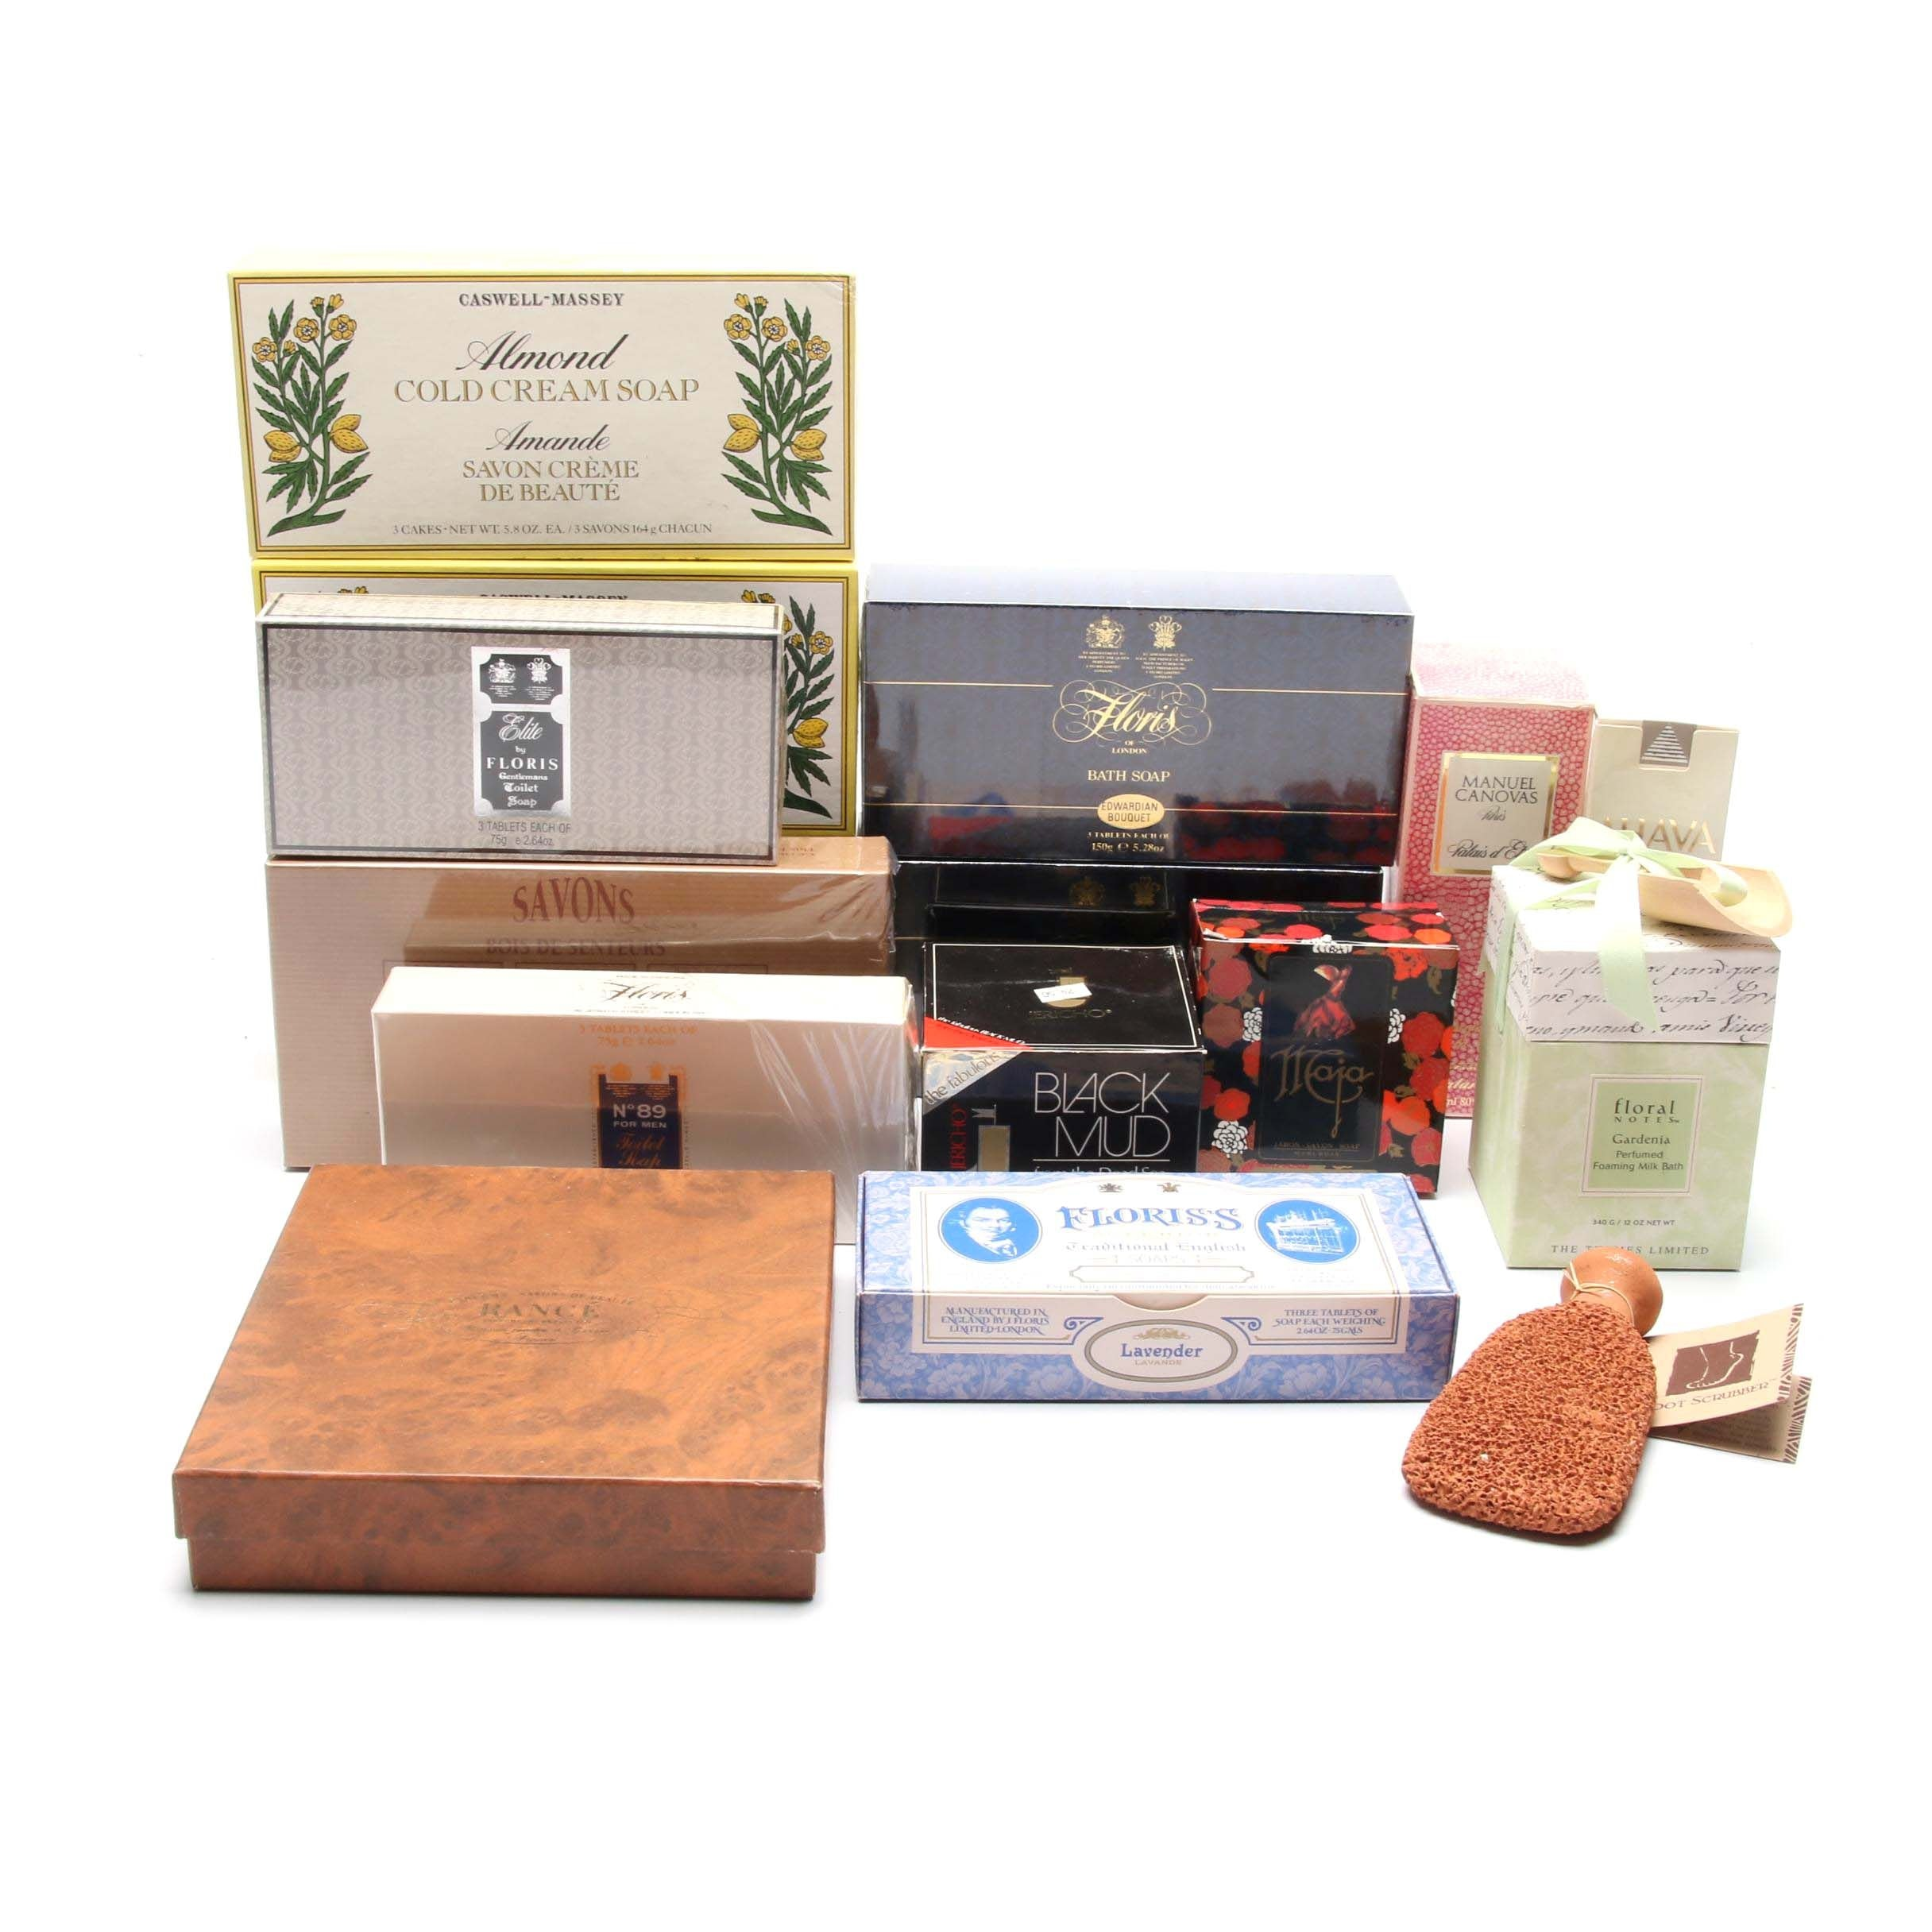 L'Occitane Wood Soaps, Floris's Soaps and Other Toiletries